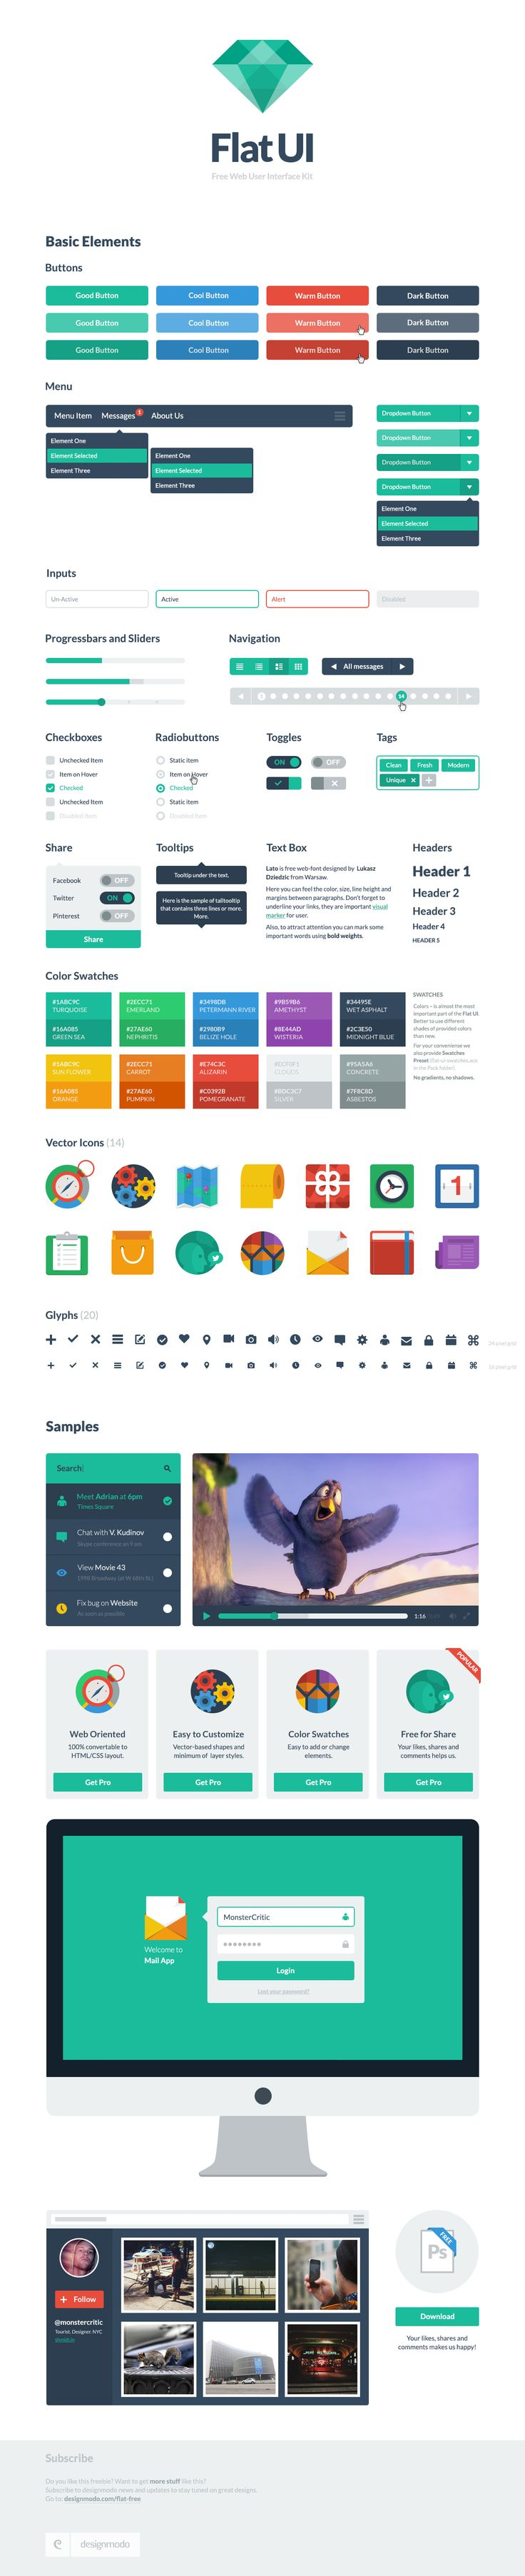 Flat UI Free – PSD User Interface Kit #webdesign #design #designer #inspiration #web #ui #userinterface #interface #user #download #free #downloads